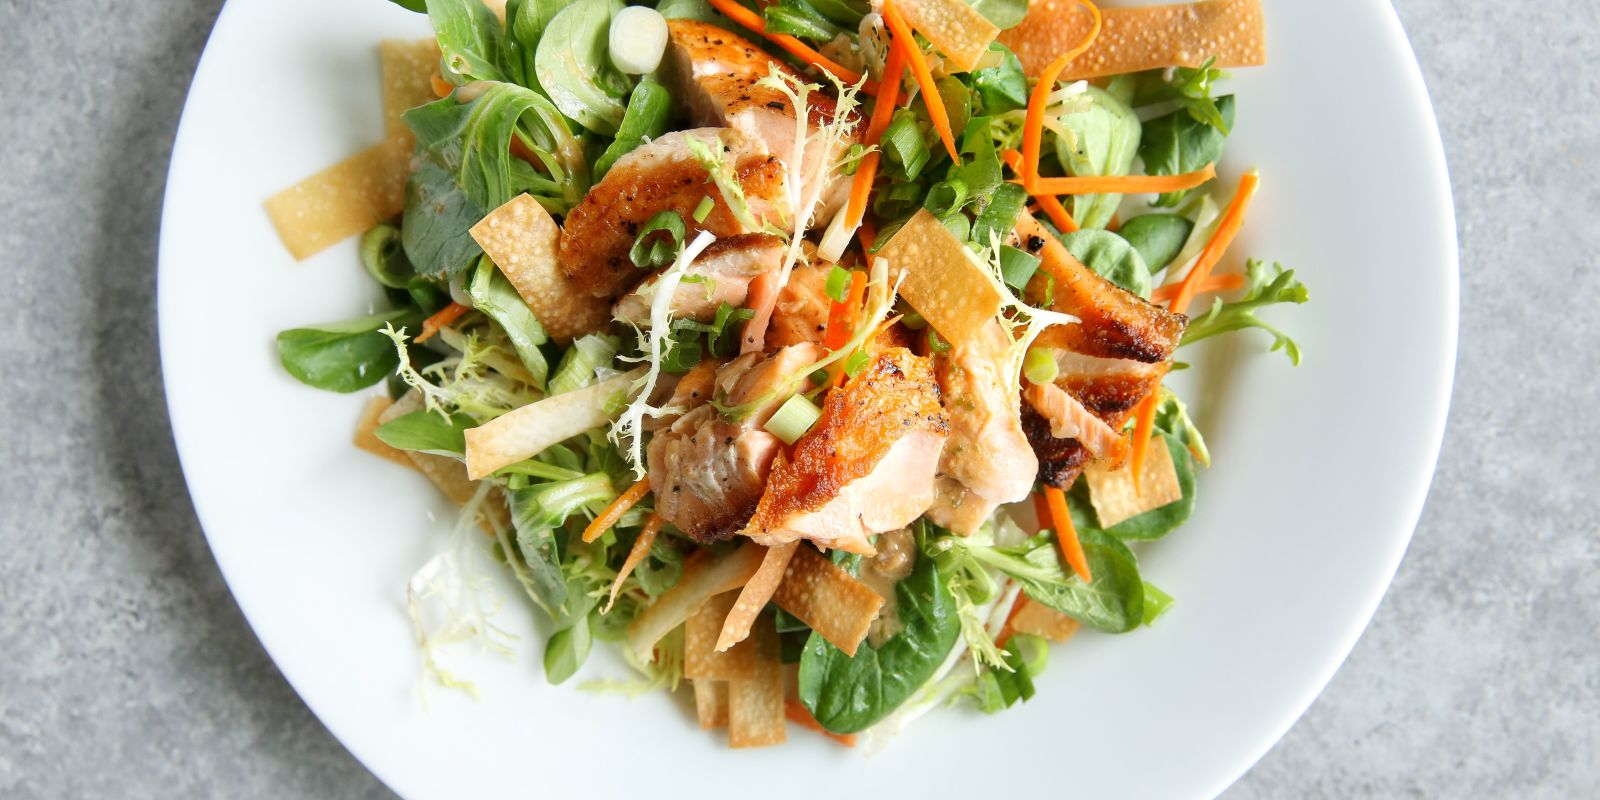 Best Sesame Ginger Salmon Salad Recipe - Delish.com